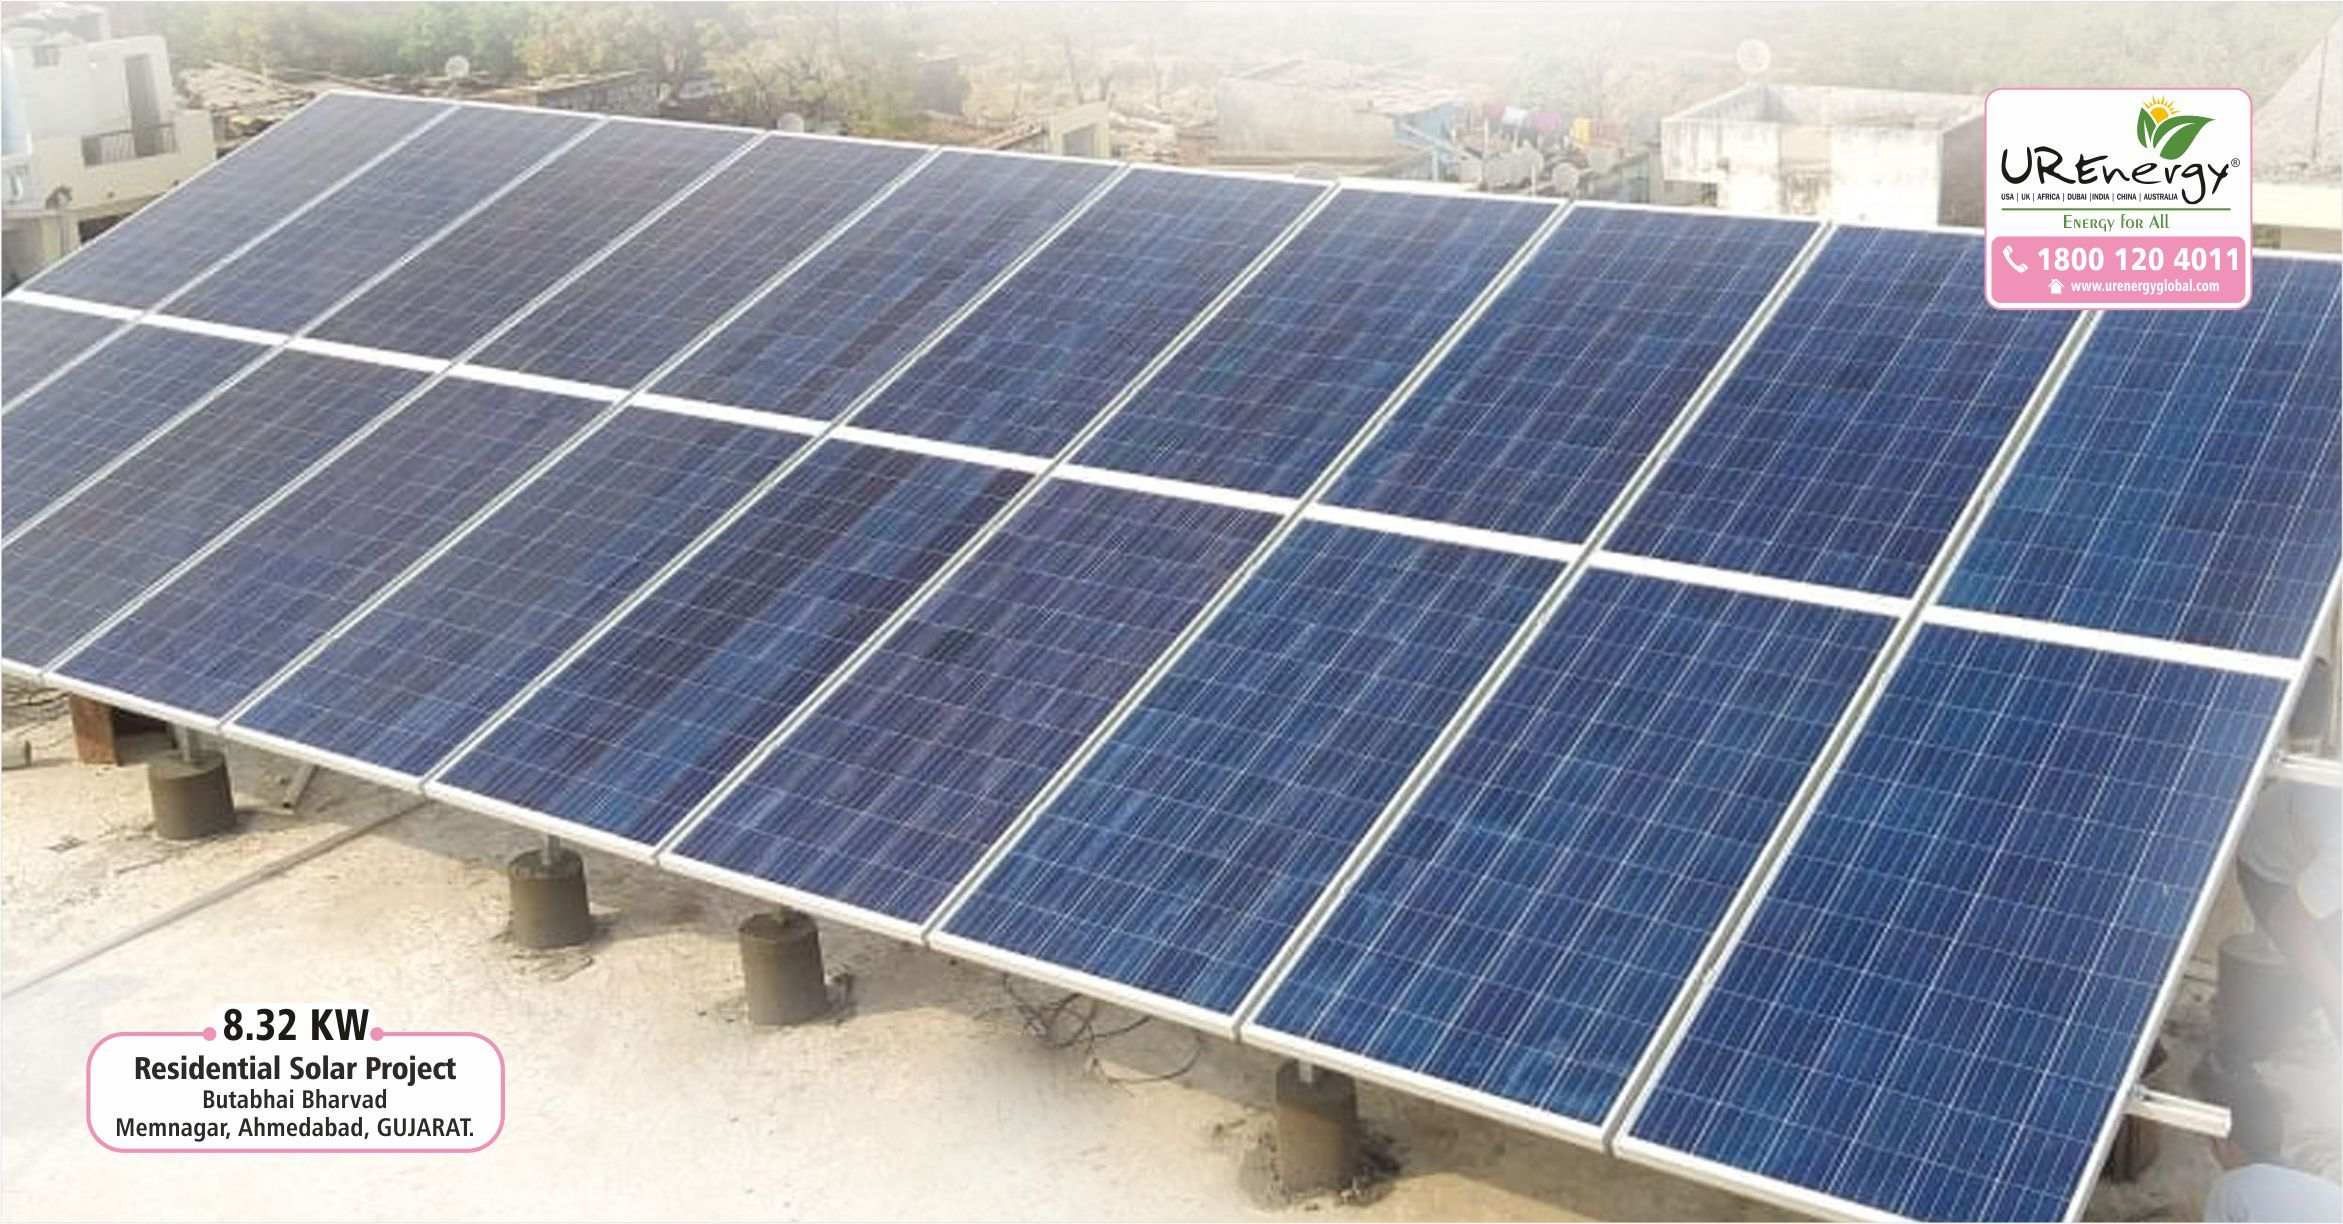 8 32 Kw Residential Rooftop Solar Power System At Ahmedabad Gujarat Installed By U R Energy Team Residential C Solar Solar Water Pump Solar Inverter